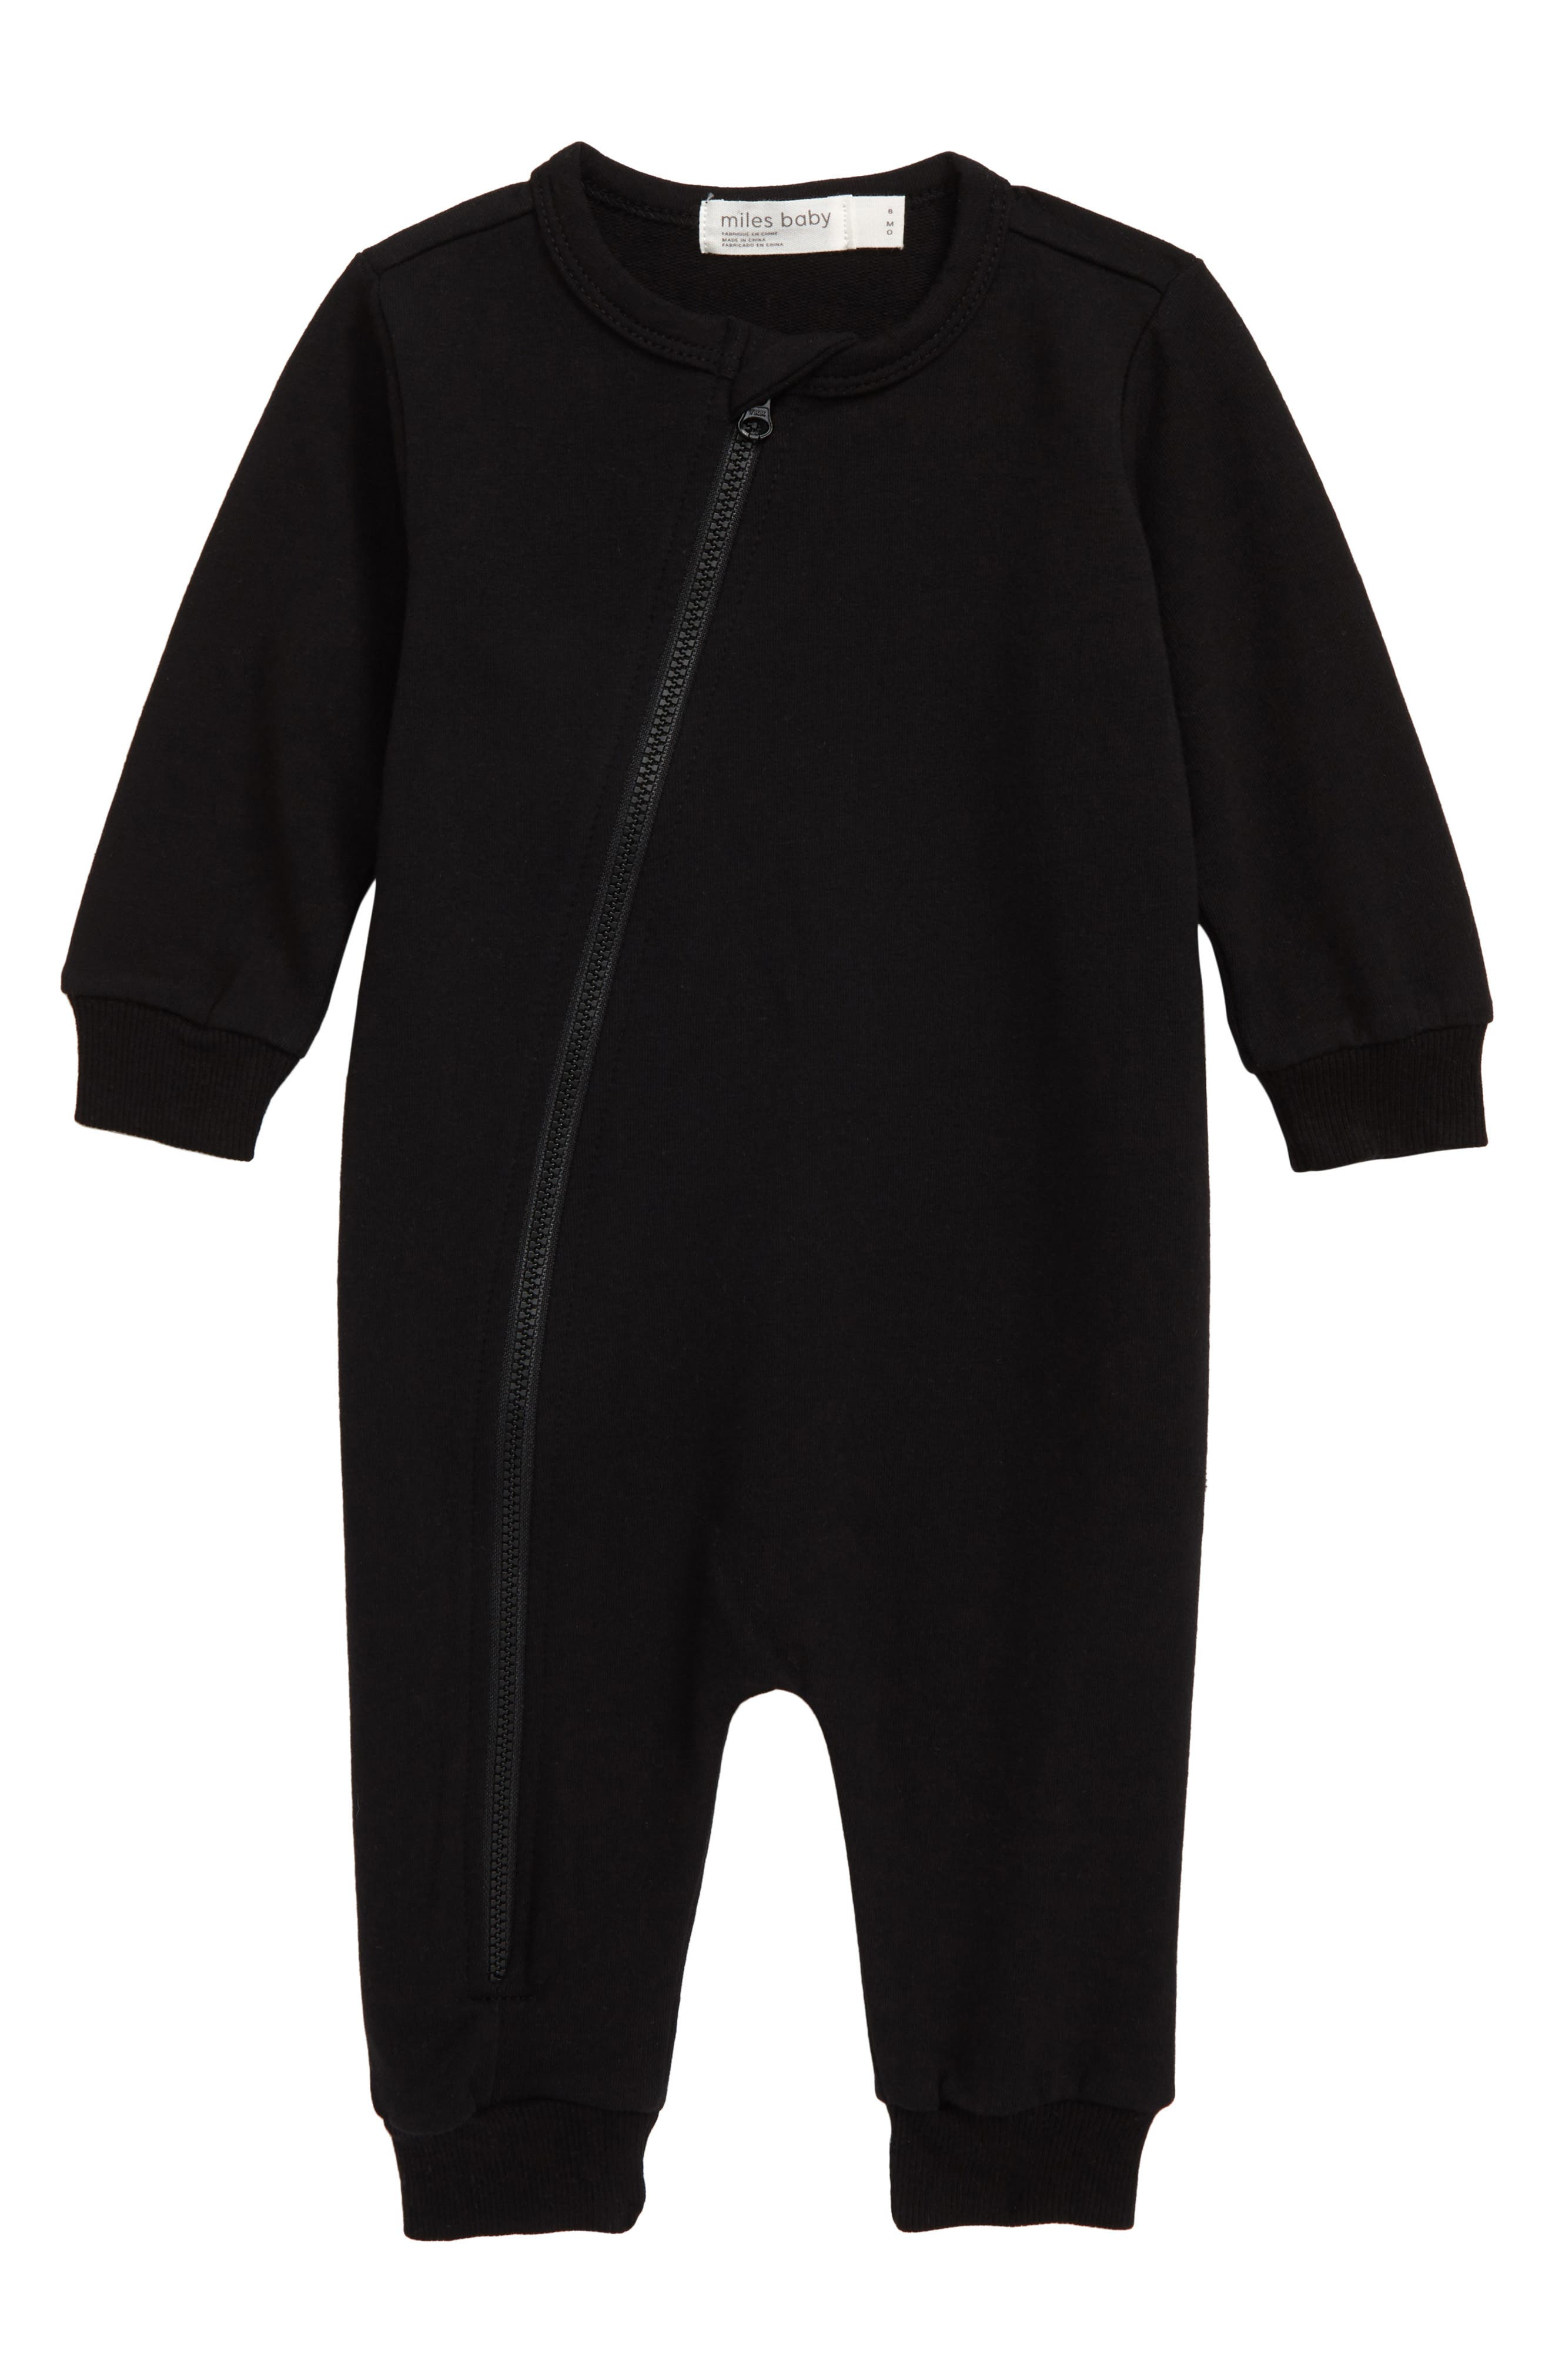 Give your little one a cozy cuddle in this soft cotton romper that\\\'s easy on you and him thanks to a top-to-bottom zipper fixed with a no-scratch chin guard. Style Name: Miles Baby Asymmetrical Zip Romper (Baby). Style Number: 5886432. Available in stores.